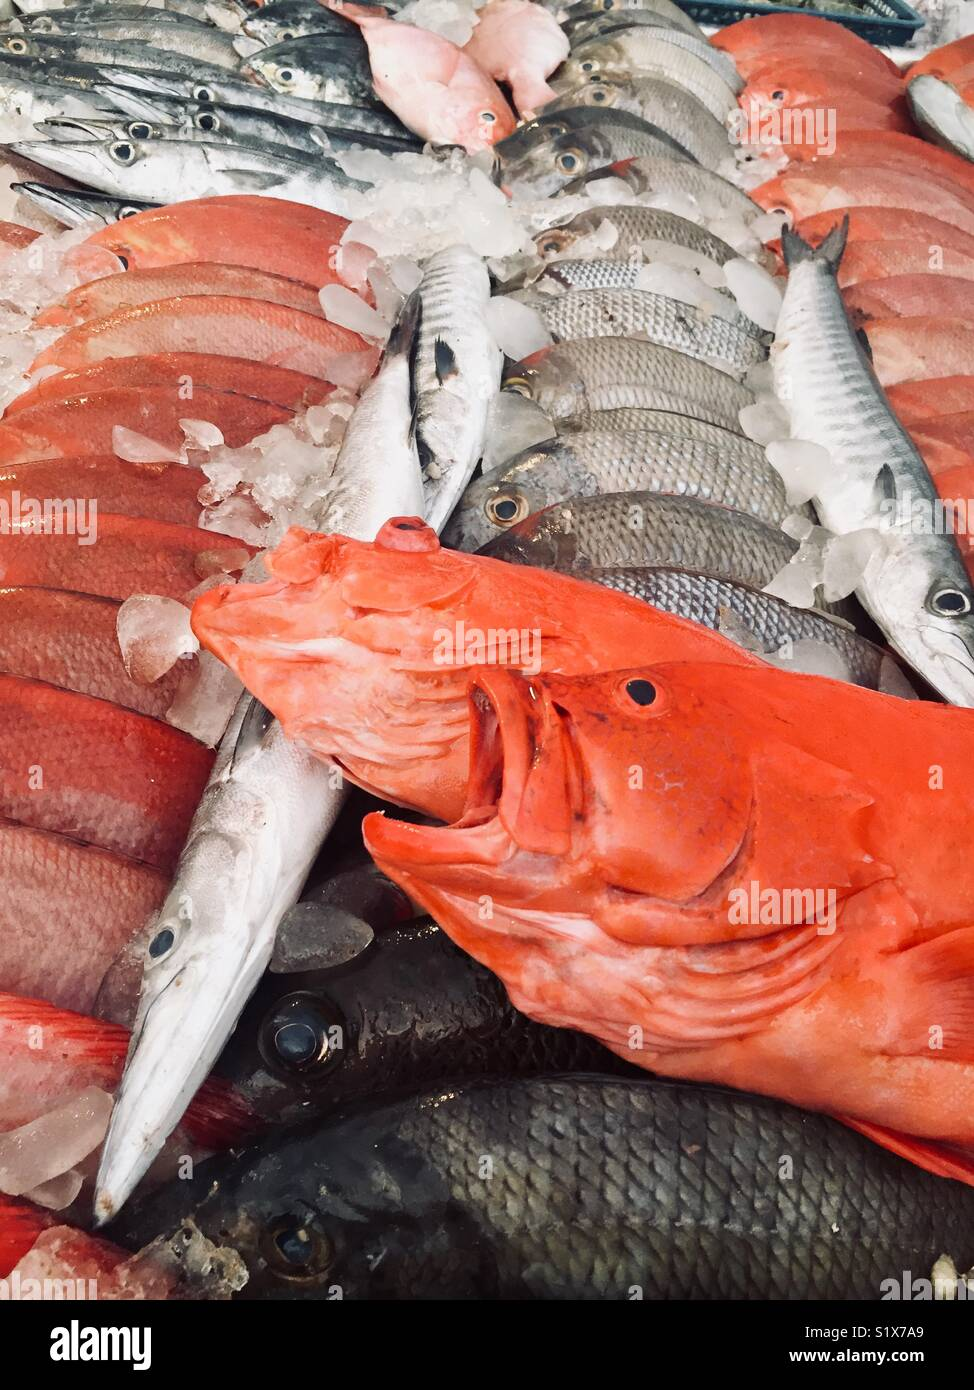 Fish Mouth Open Sale Stock Photos & Fish Mouth Open Sale Stock ...